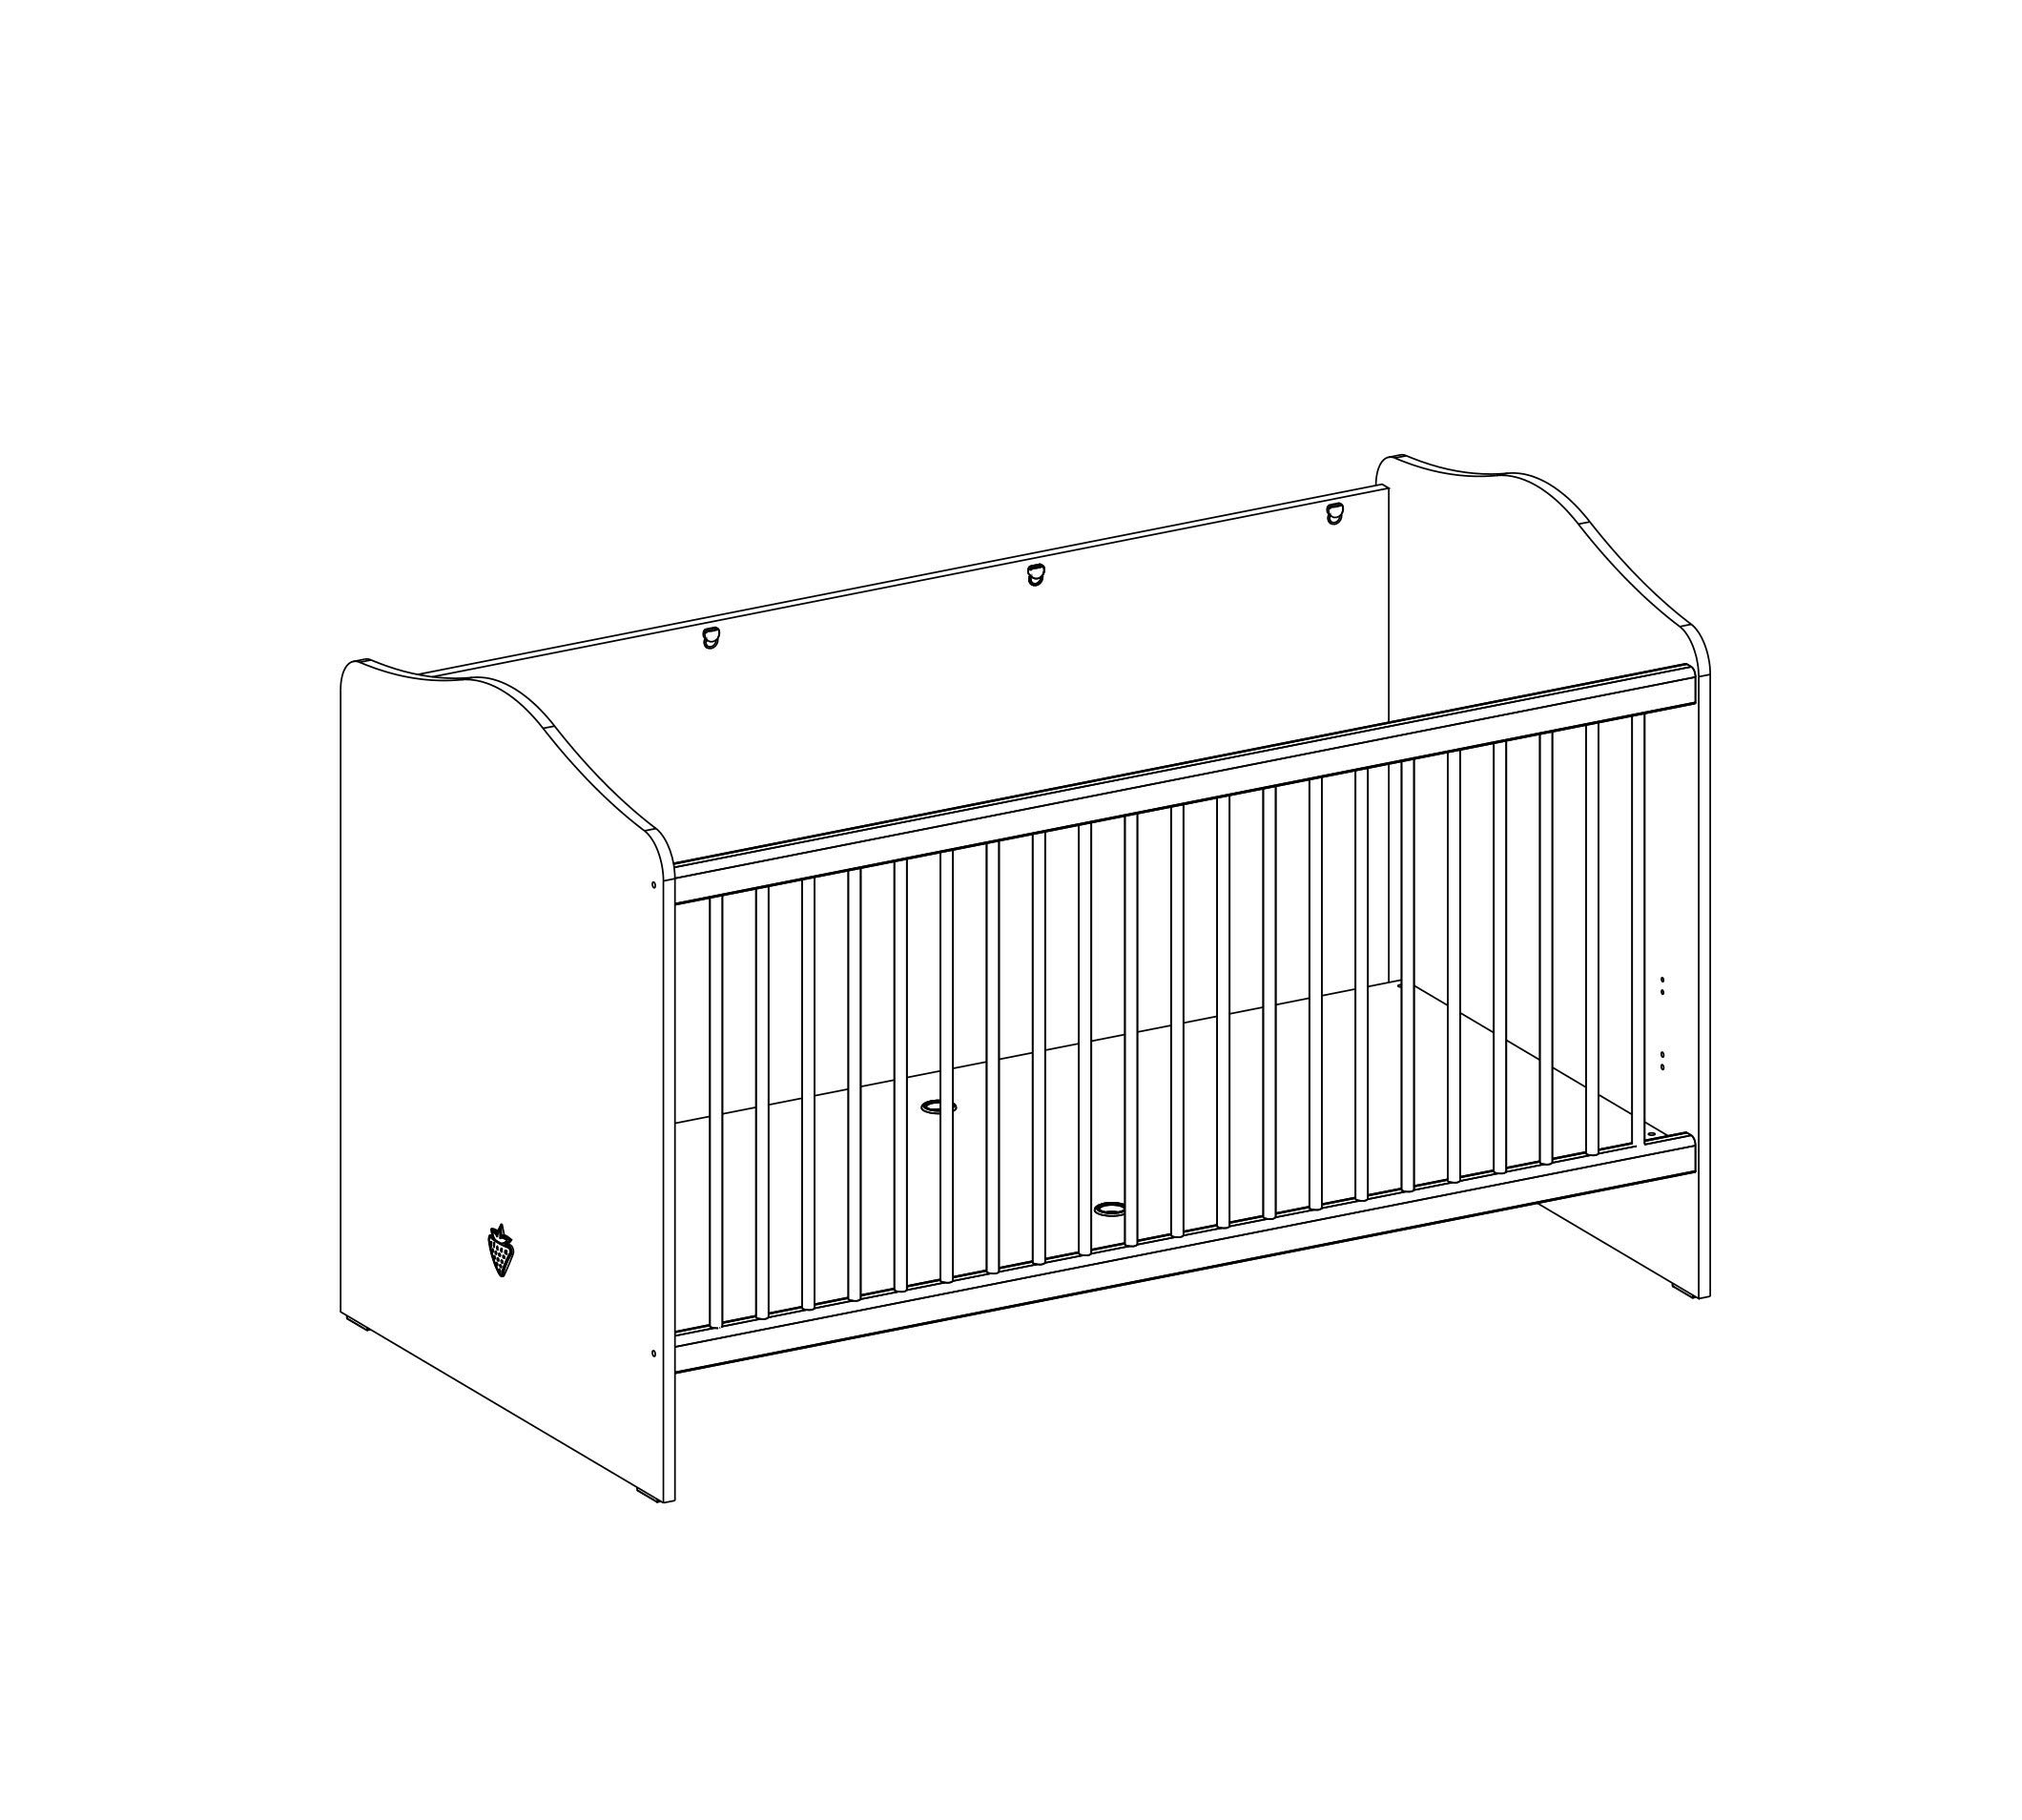 Dafnedesign.com - Cot early childhood bedroom for newborn or toddler - A baby cot with safety cage with poles - Includes a mattress - Width: 146 cm Height: 92 cm depth: 78 cm - [Series: Daphne-Classical] - (DF11) Dafnedesign 1 bed early childhood bedroom Baby bed Safety cage with poles 4